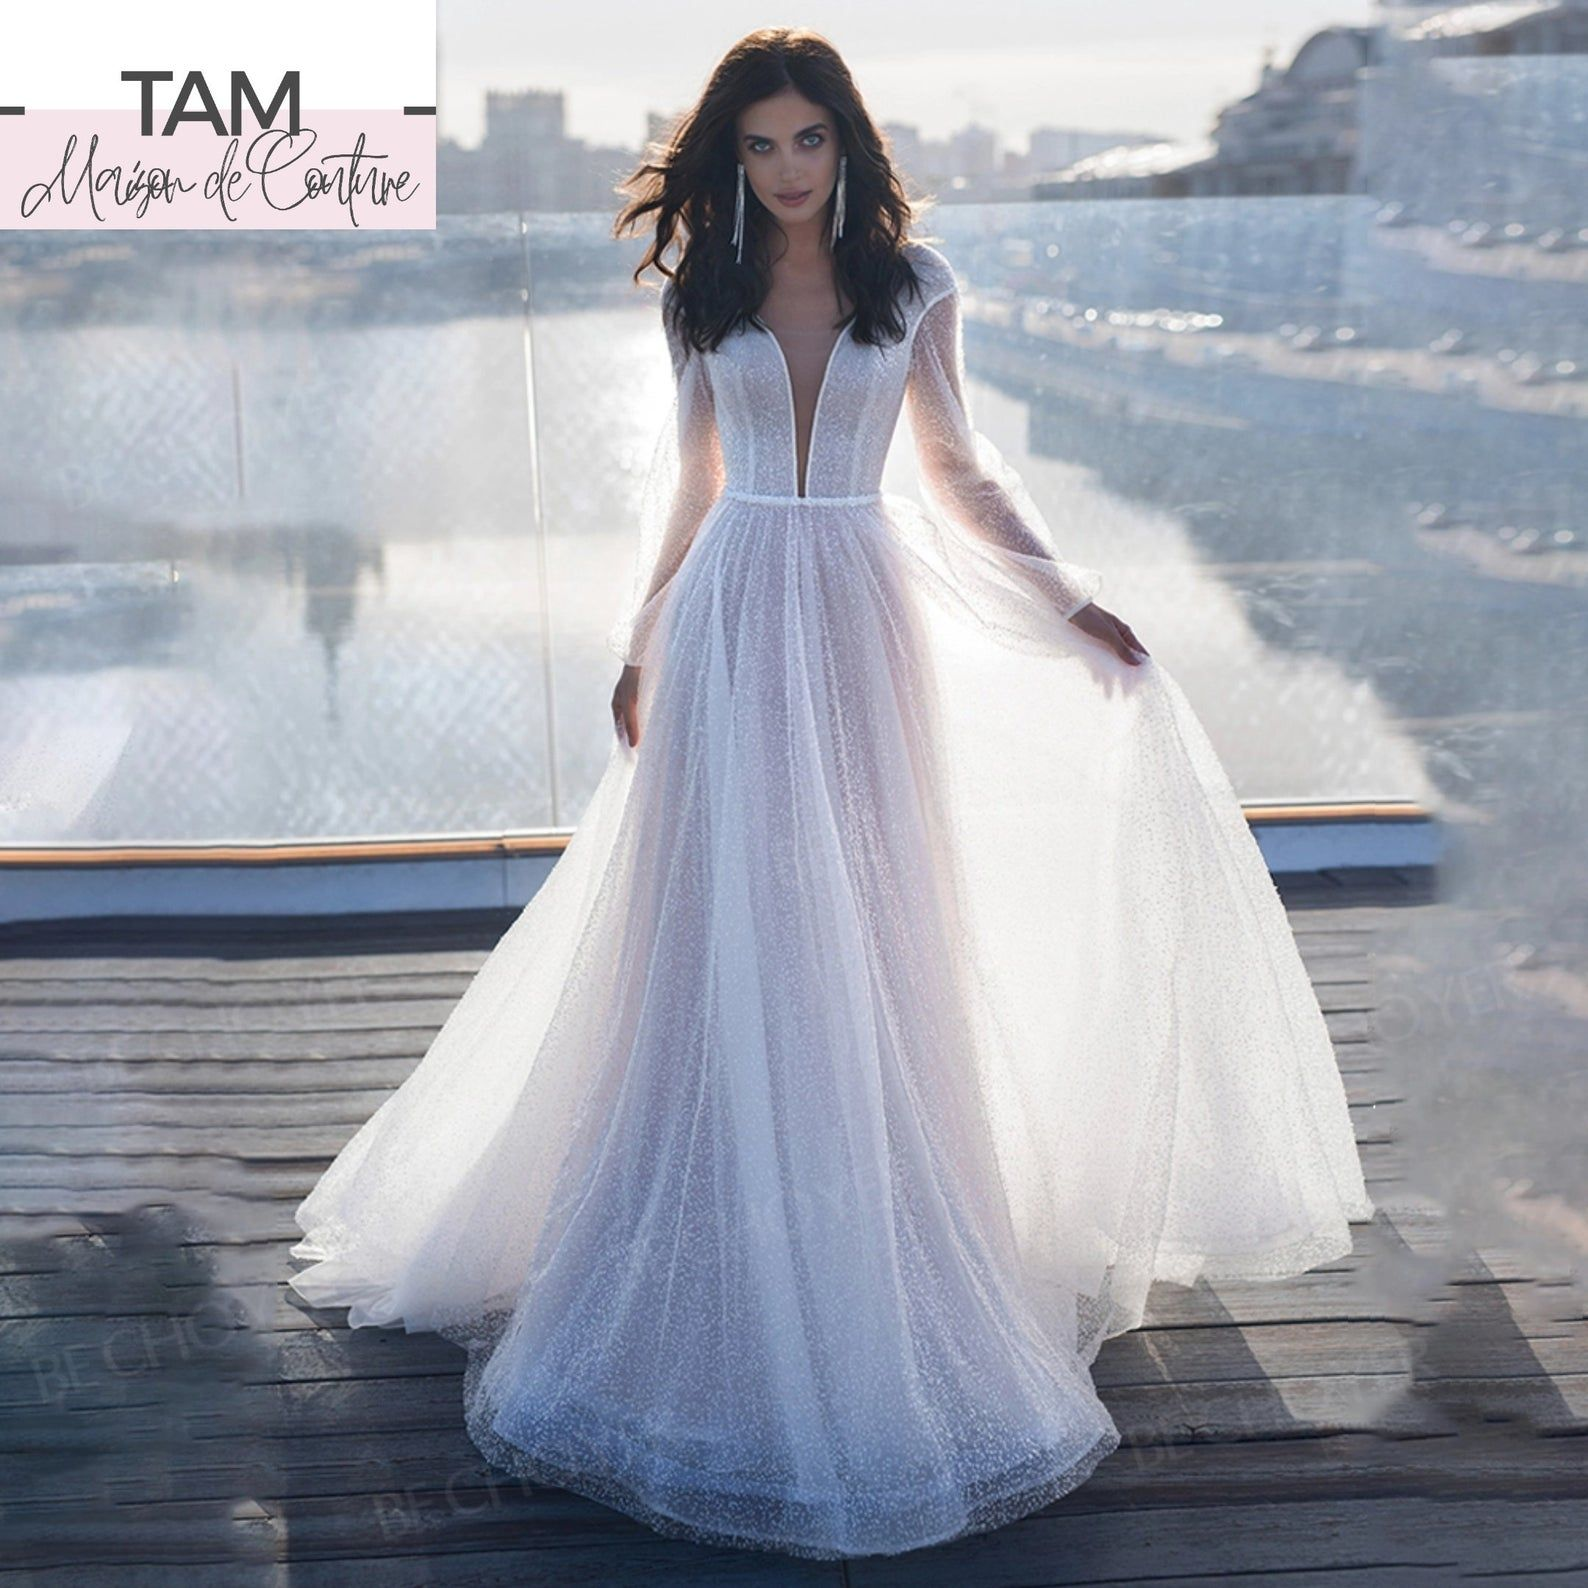 2020 New Wedding Dress Fashion Dress western formal wear for ladies womens evening suits for weddings